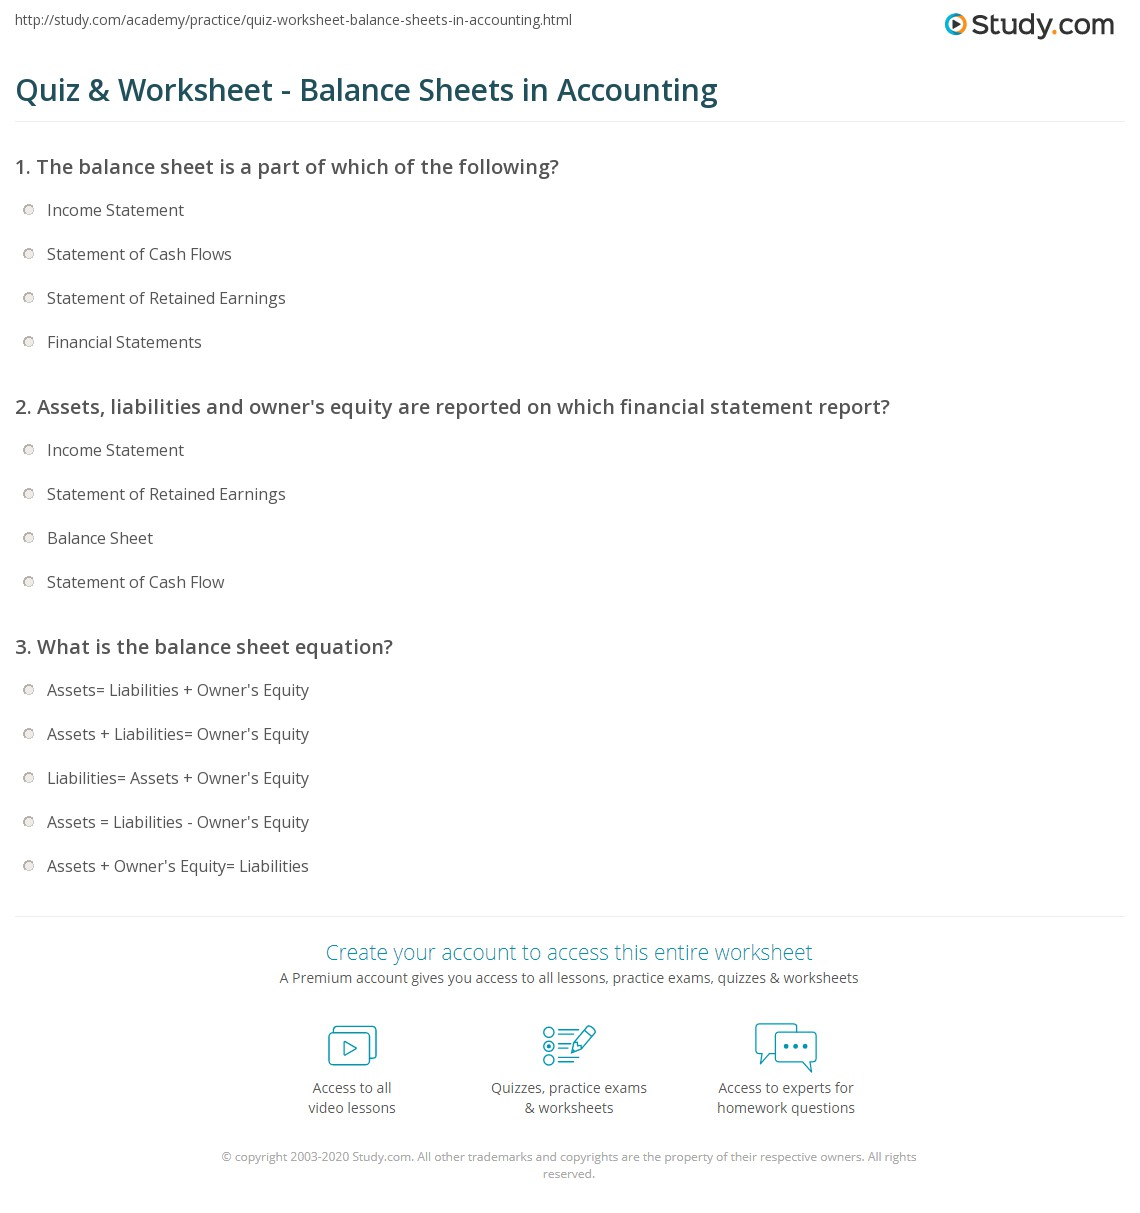 quiz & worksheet - balance sheets in accounting | study